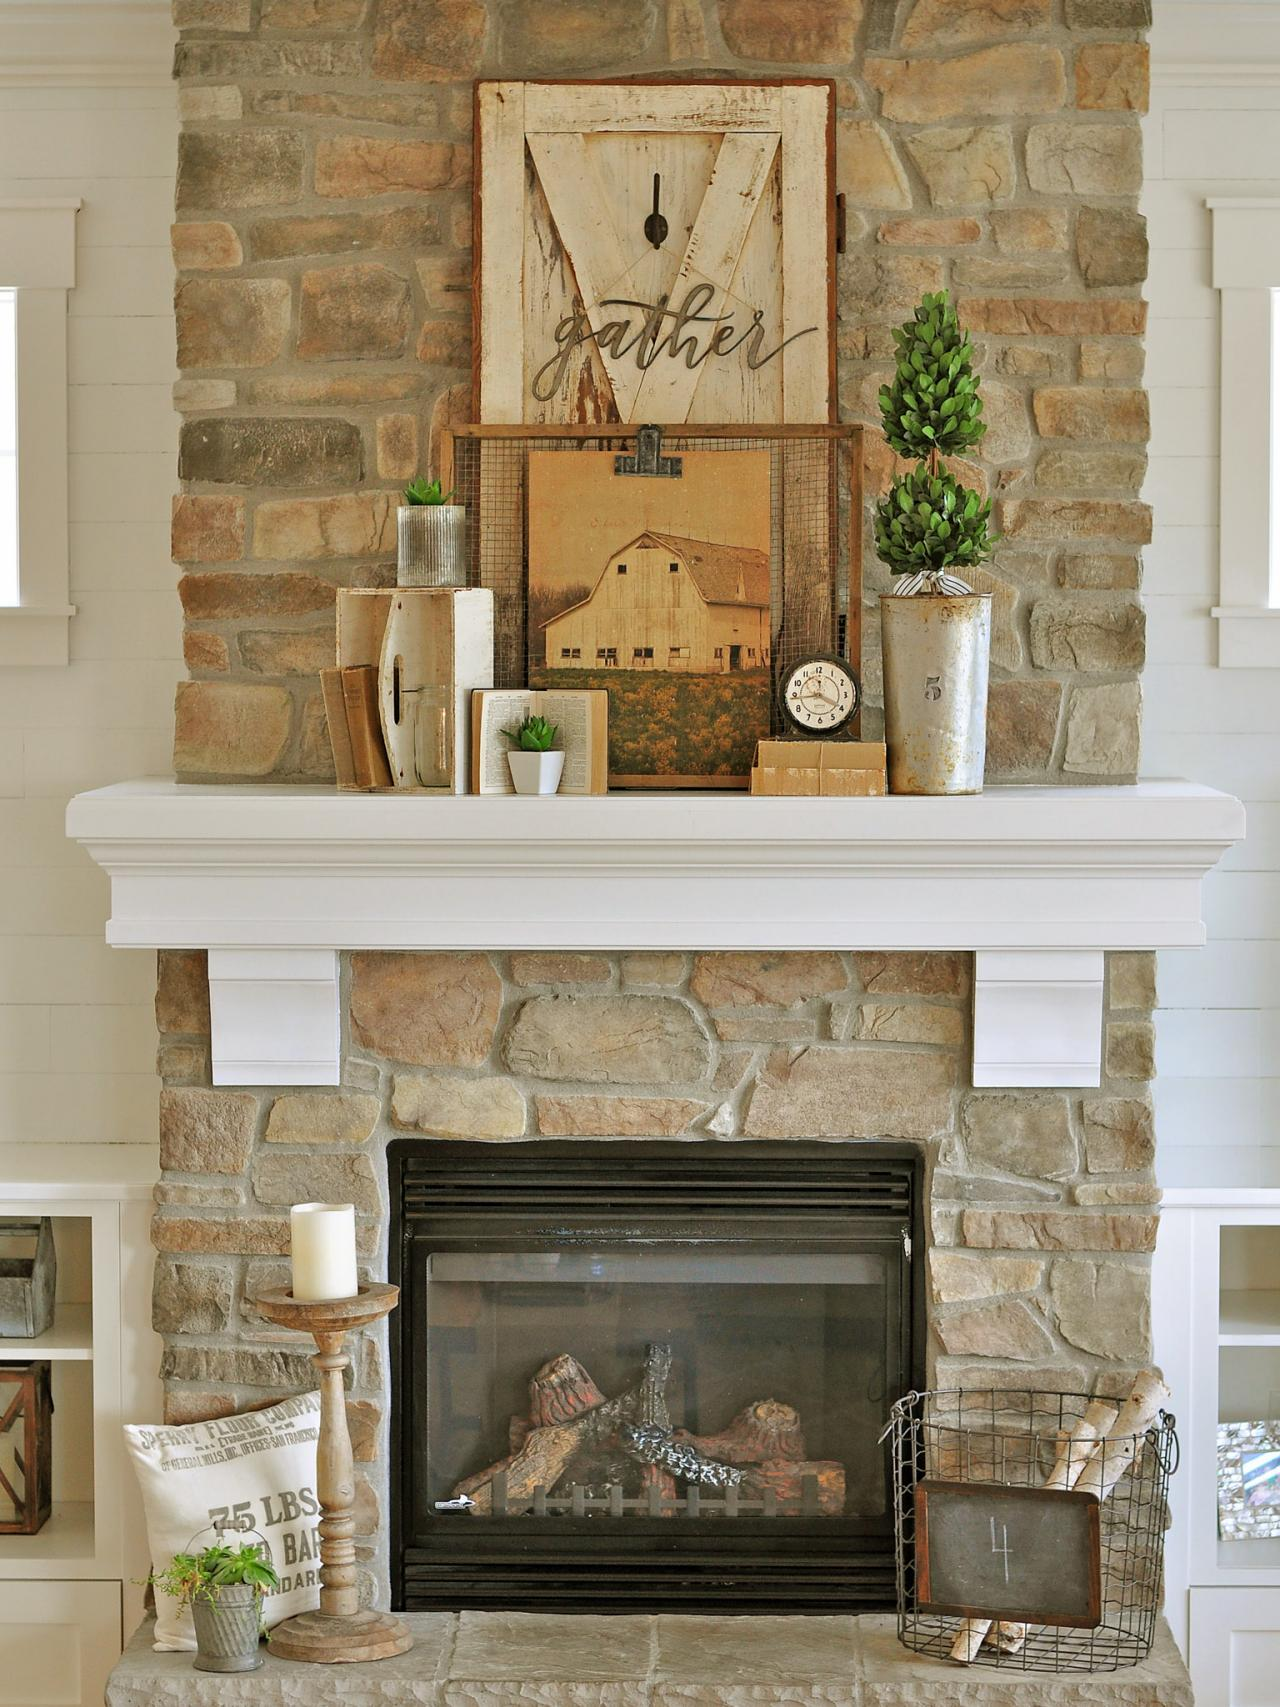 Mantel Decorating Ideas For The Holidays: 24 Best Fall Mantel Decorating Ideas And Designs For 2019